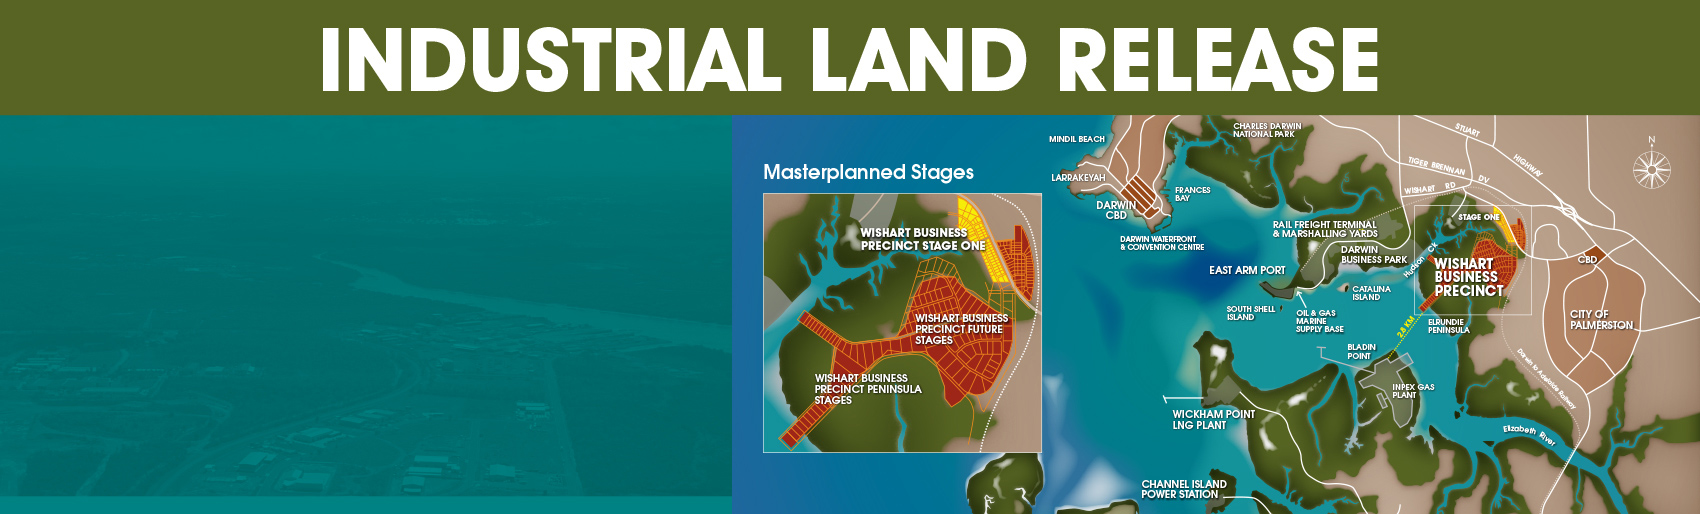 Freehold Industrial Land Release